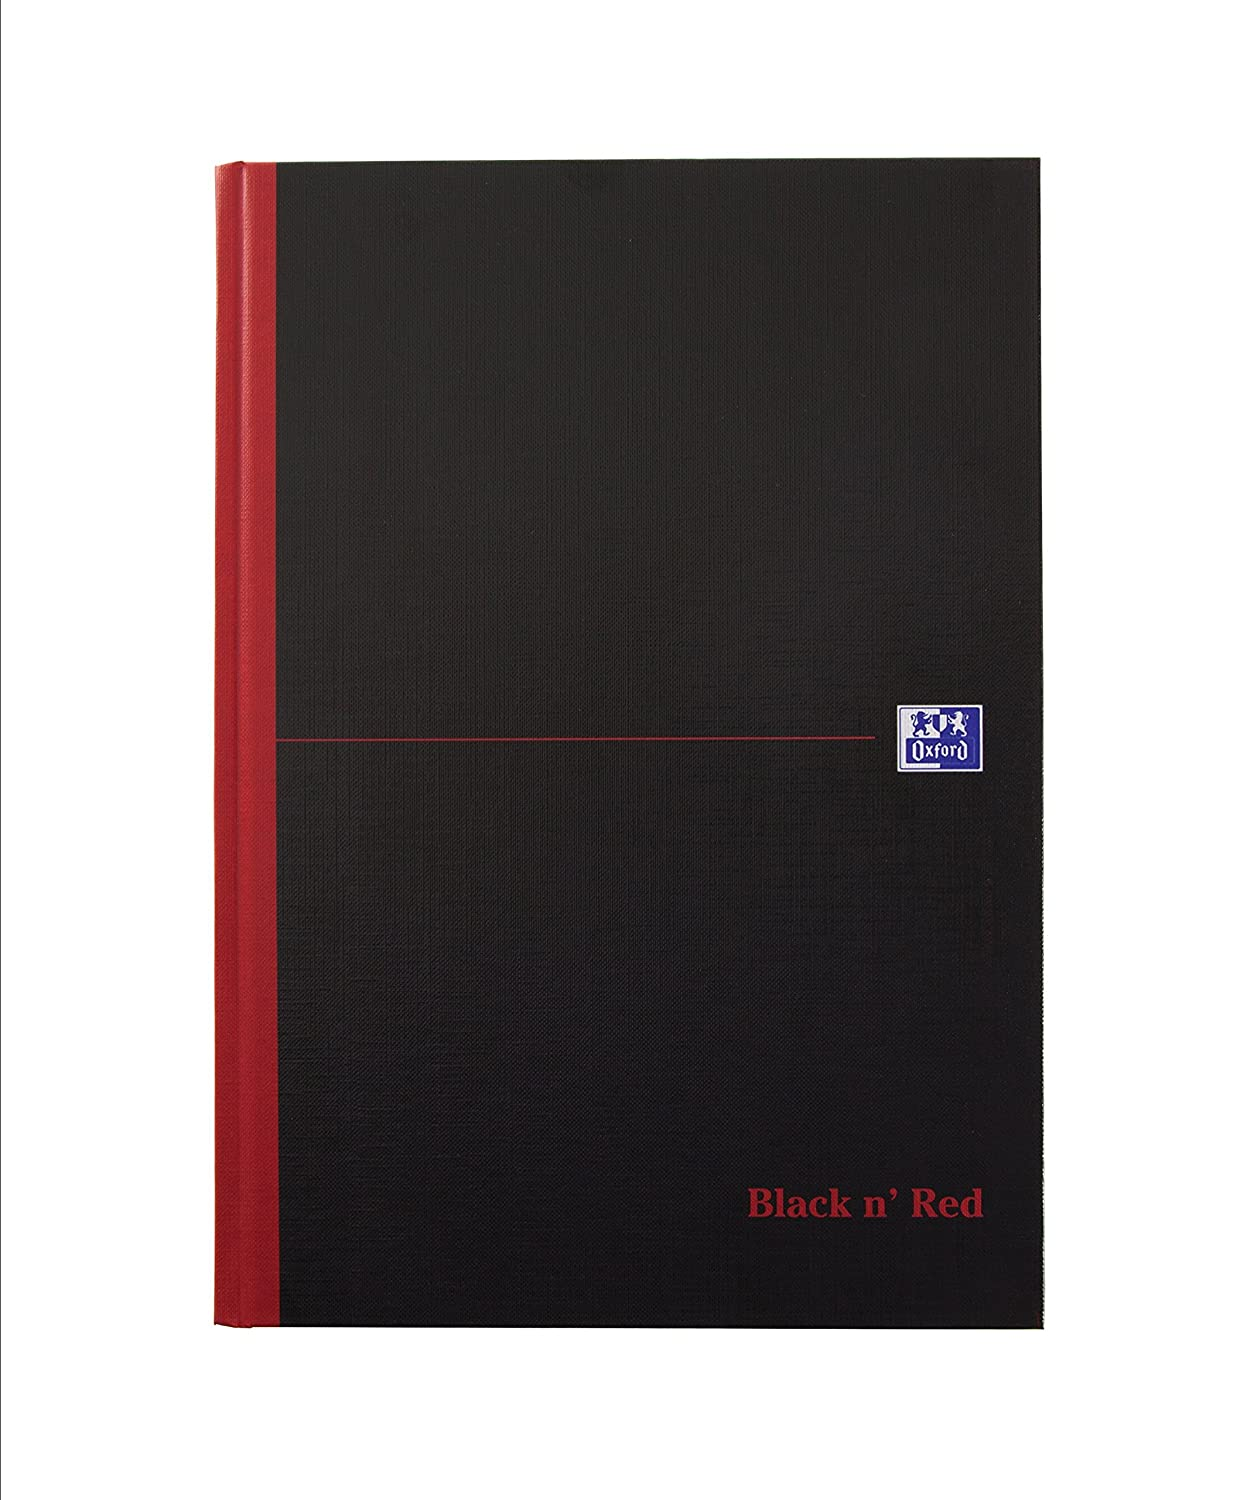 Quaderno rigido, 192 pagine, rosso e nero Singolo B5 Black/Red Oxford Black n' Red 400082917